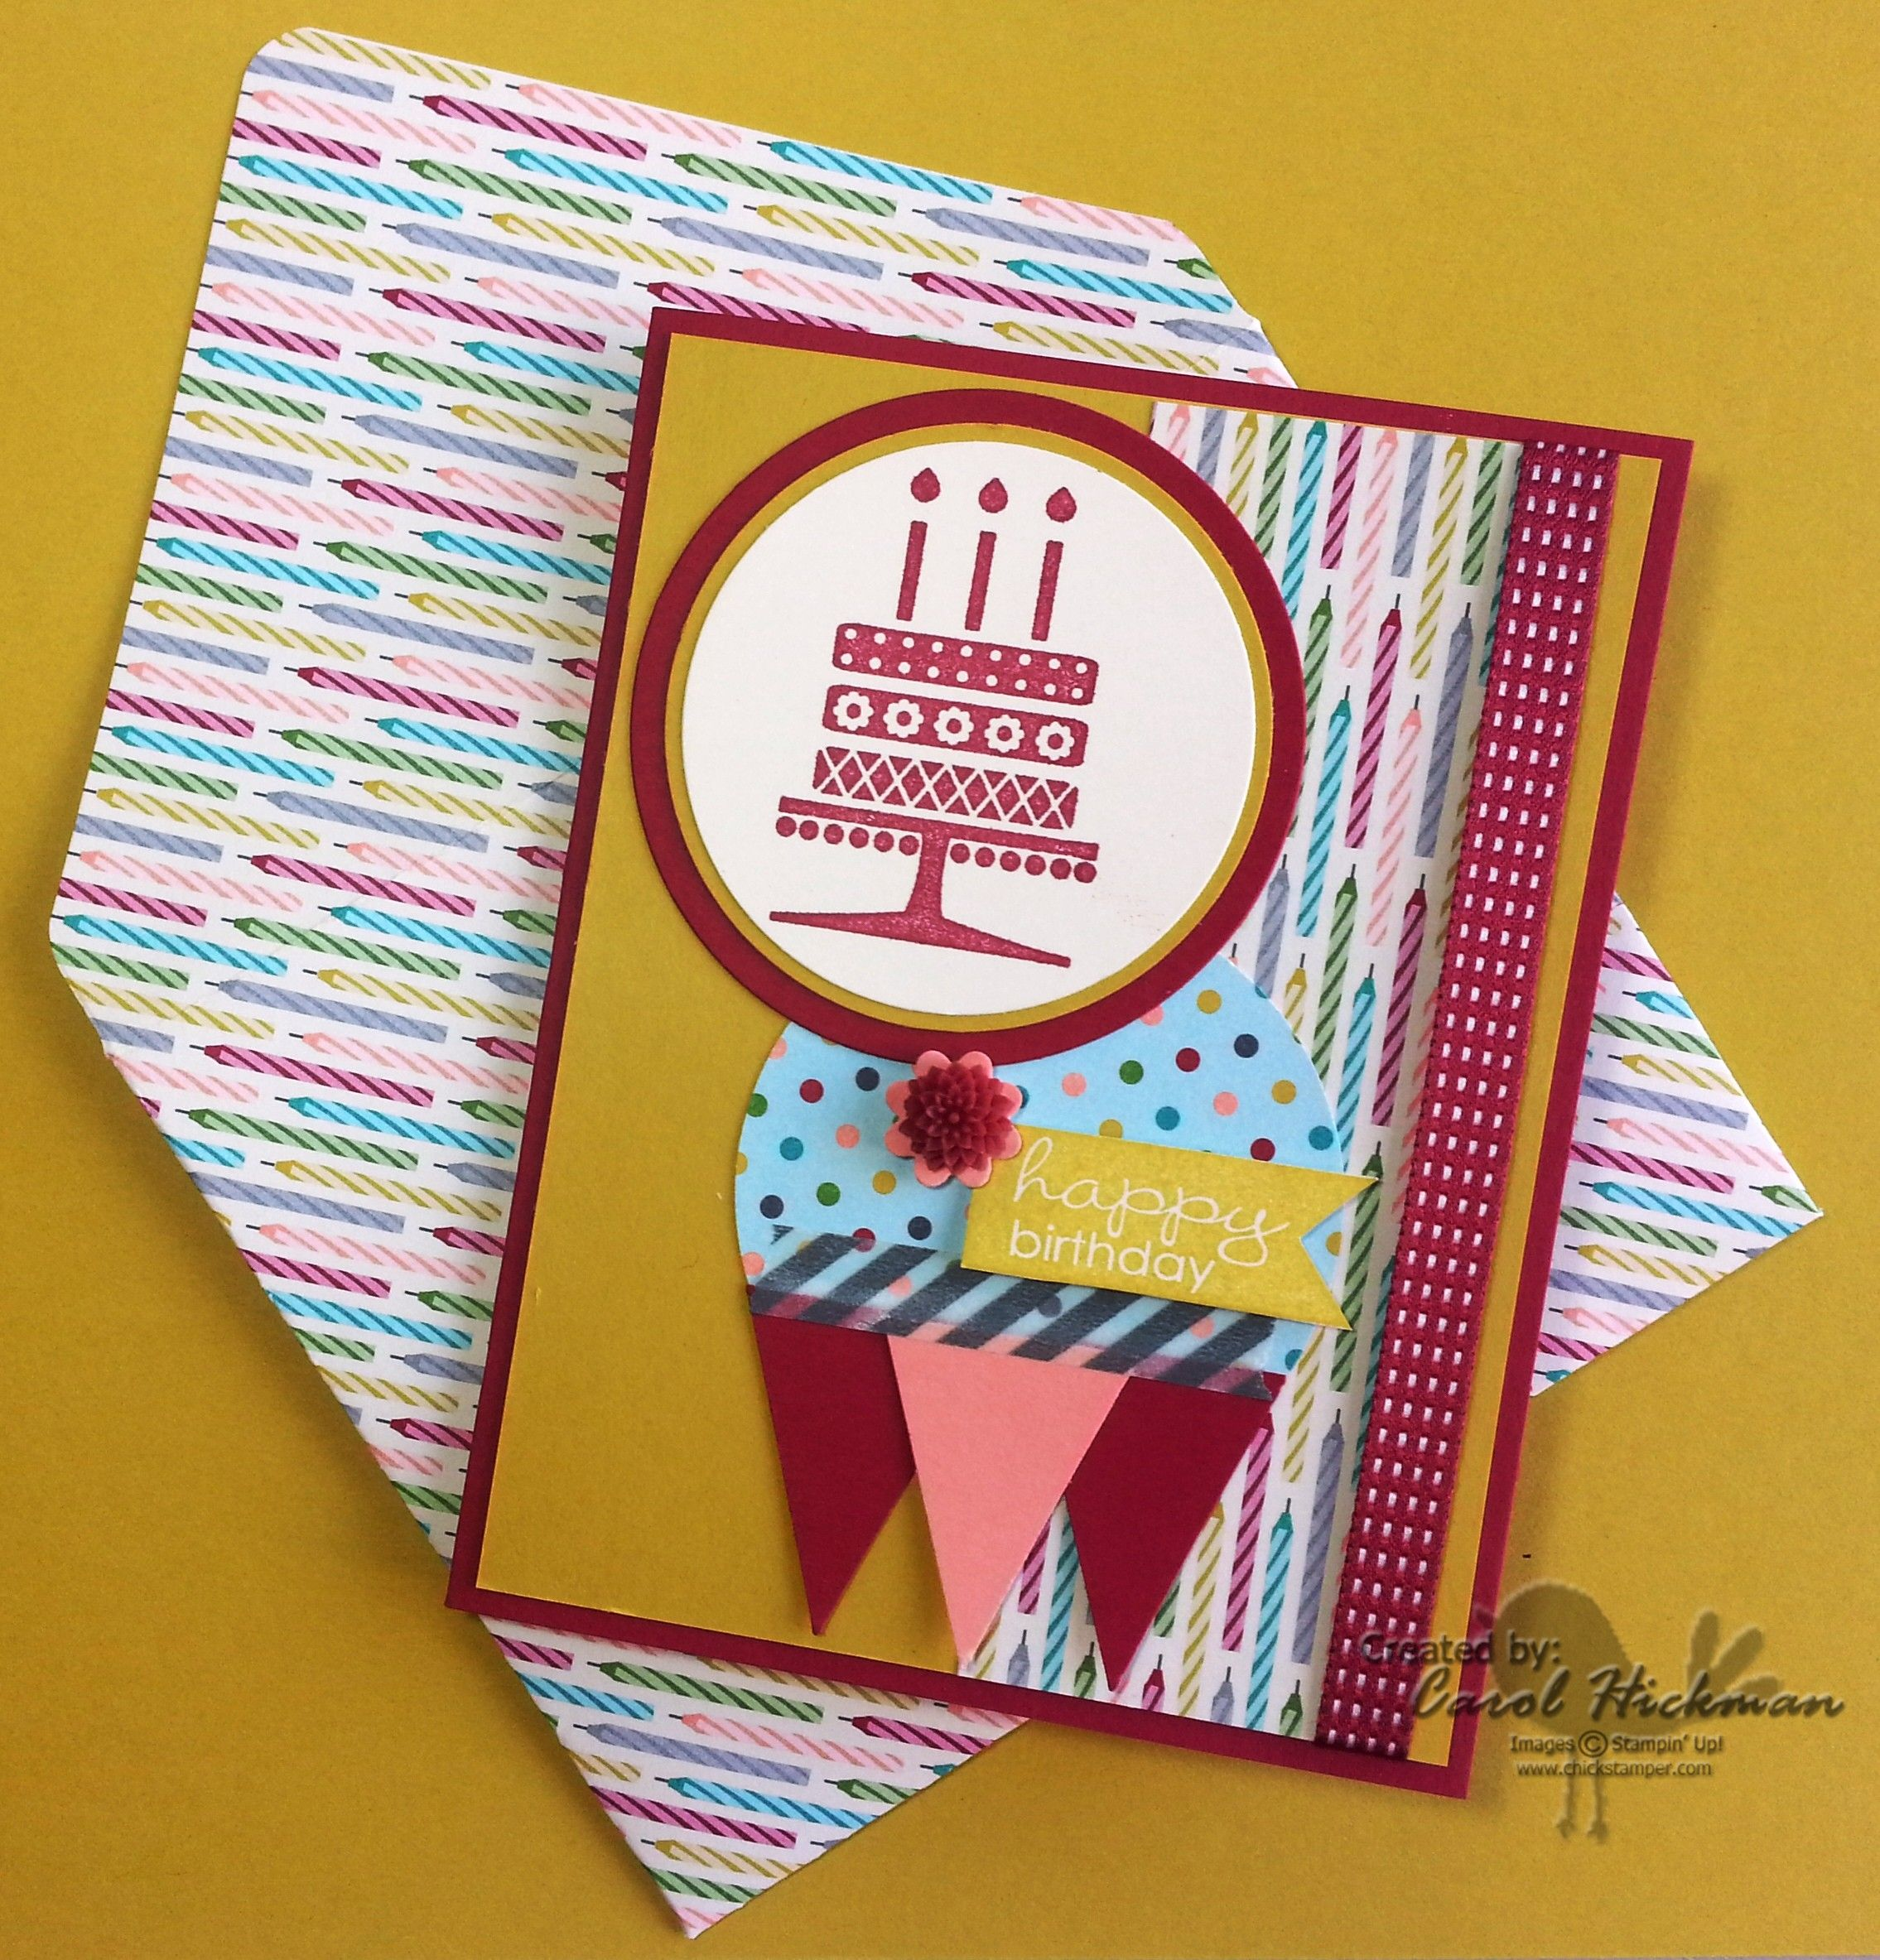 STAMPIN' UP! CHICKSTAMPER--EMBELLISHED EVENTS & BANNER GREETINGS 'HAPPY BIRTHDAY' WITH COORDINATING ENVELOPE!! Envelope Punch Board, Circle Framelits. Click on picture for supplies & dimensions! :)